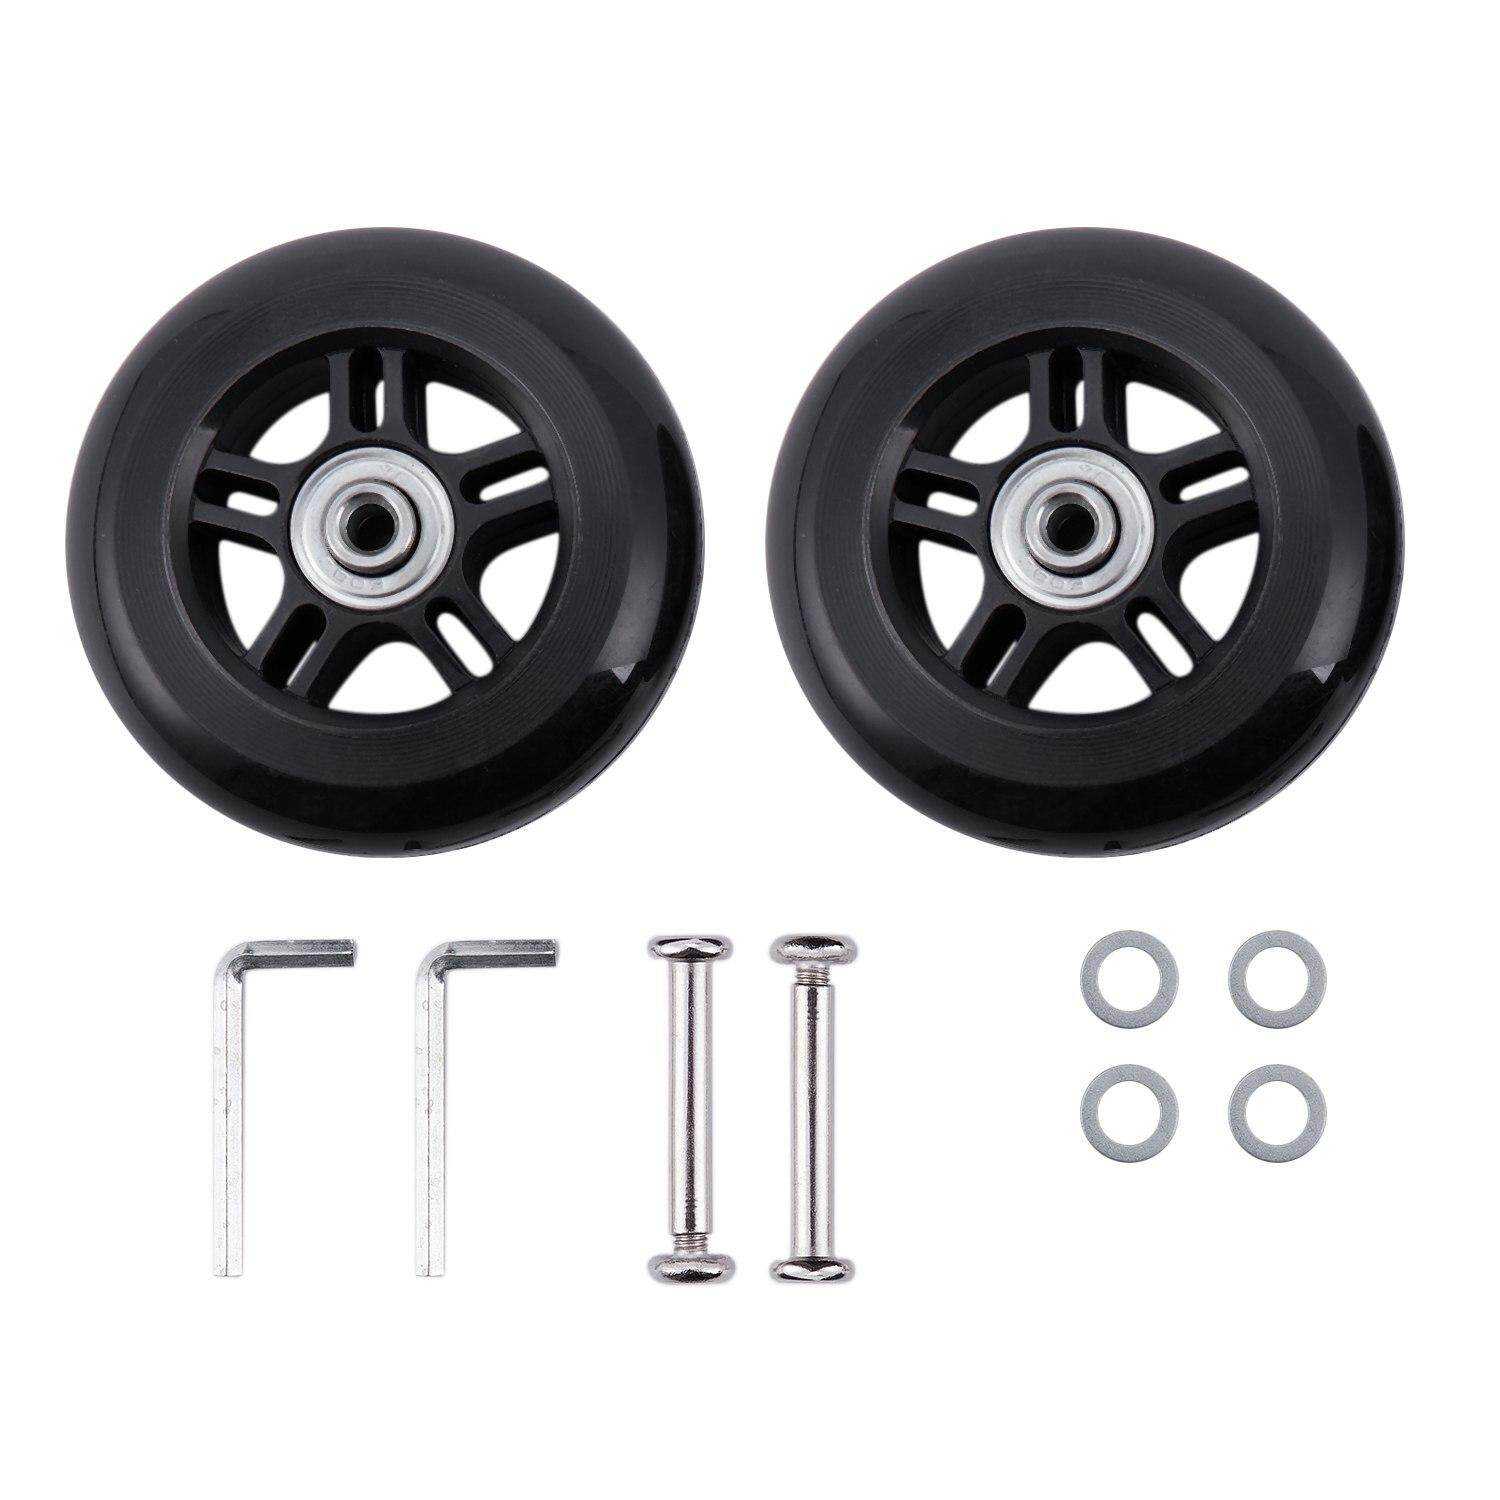 2 Set Luggage Suitcase Replacement Wheels Axles And Wrench Repair Set 84*24mm By Rainning.